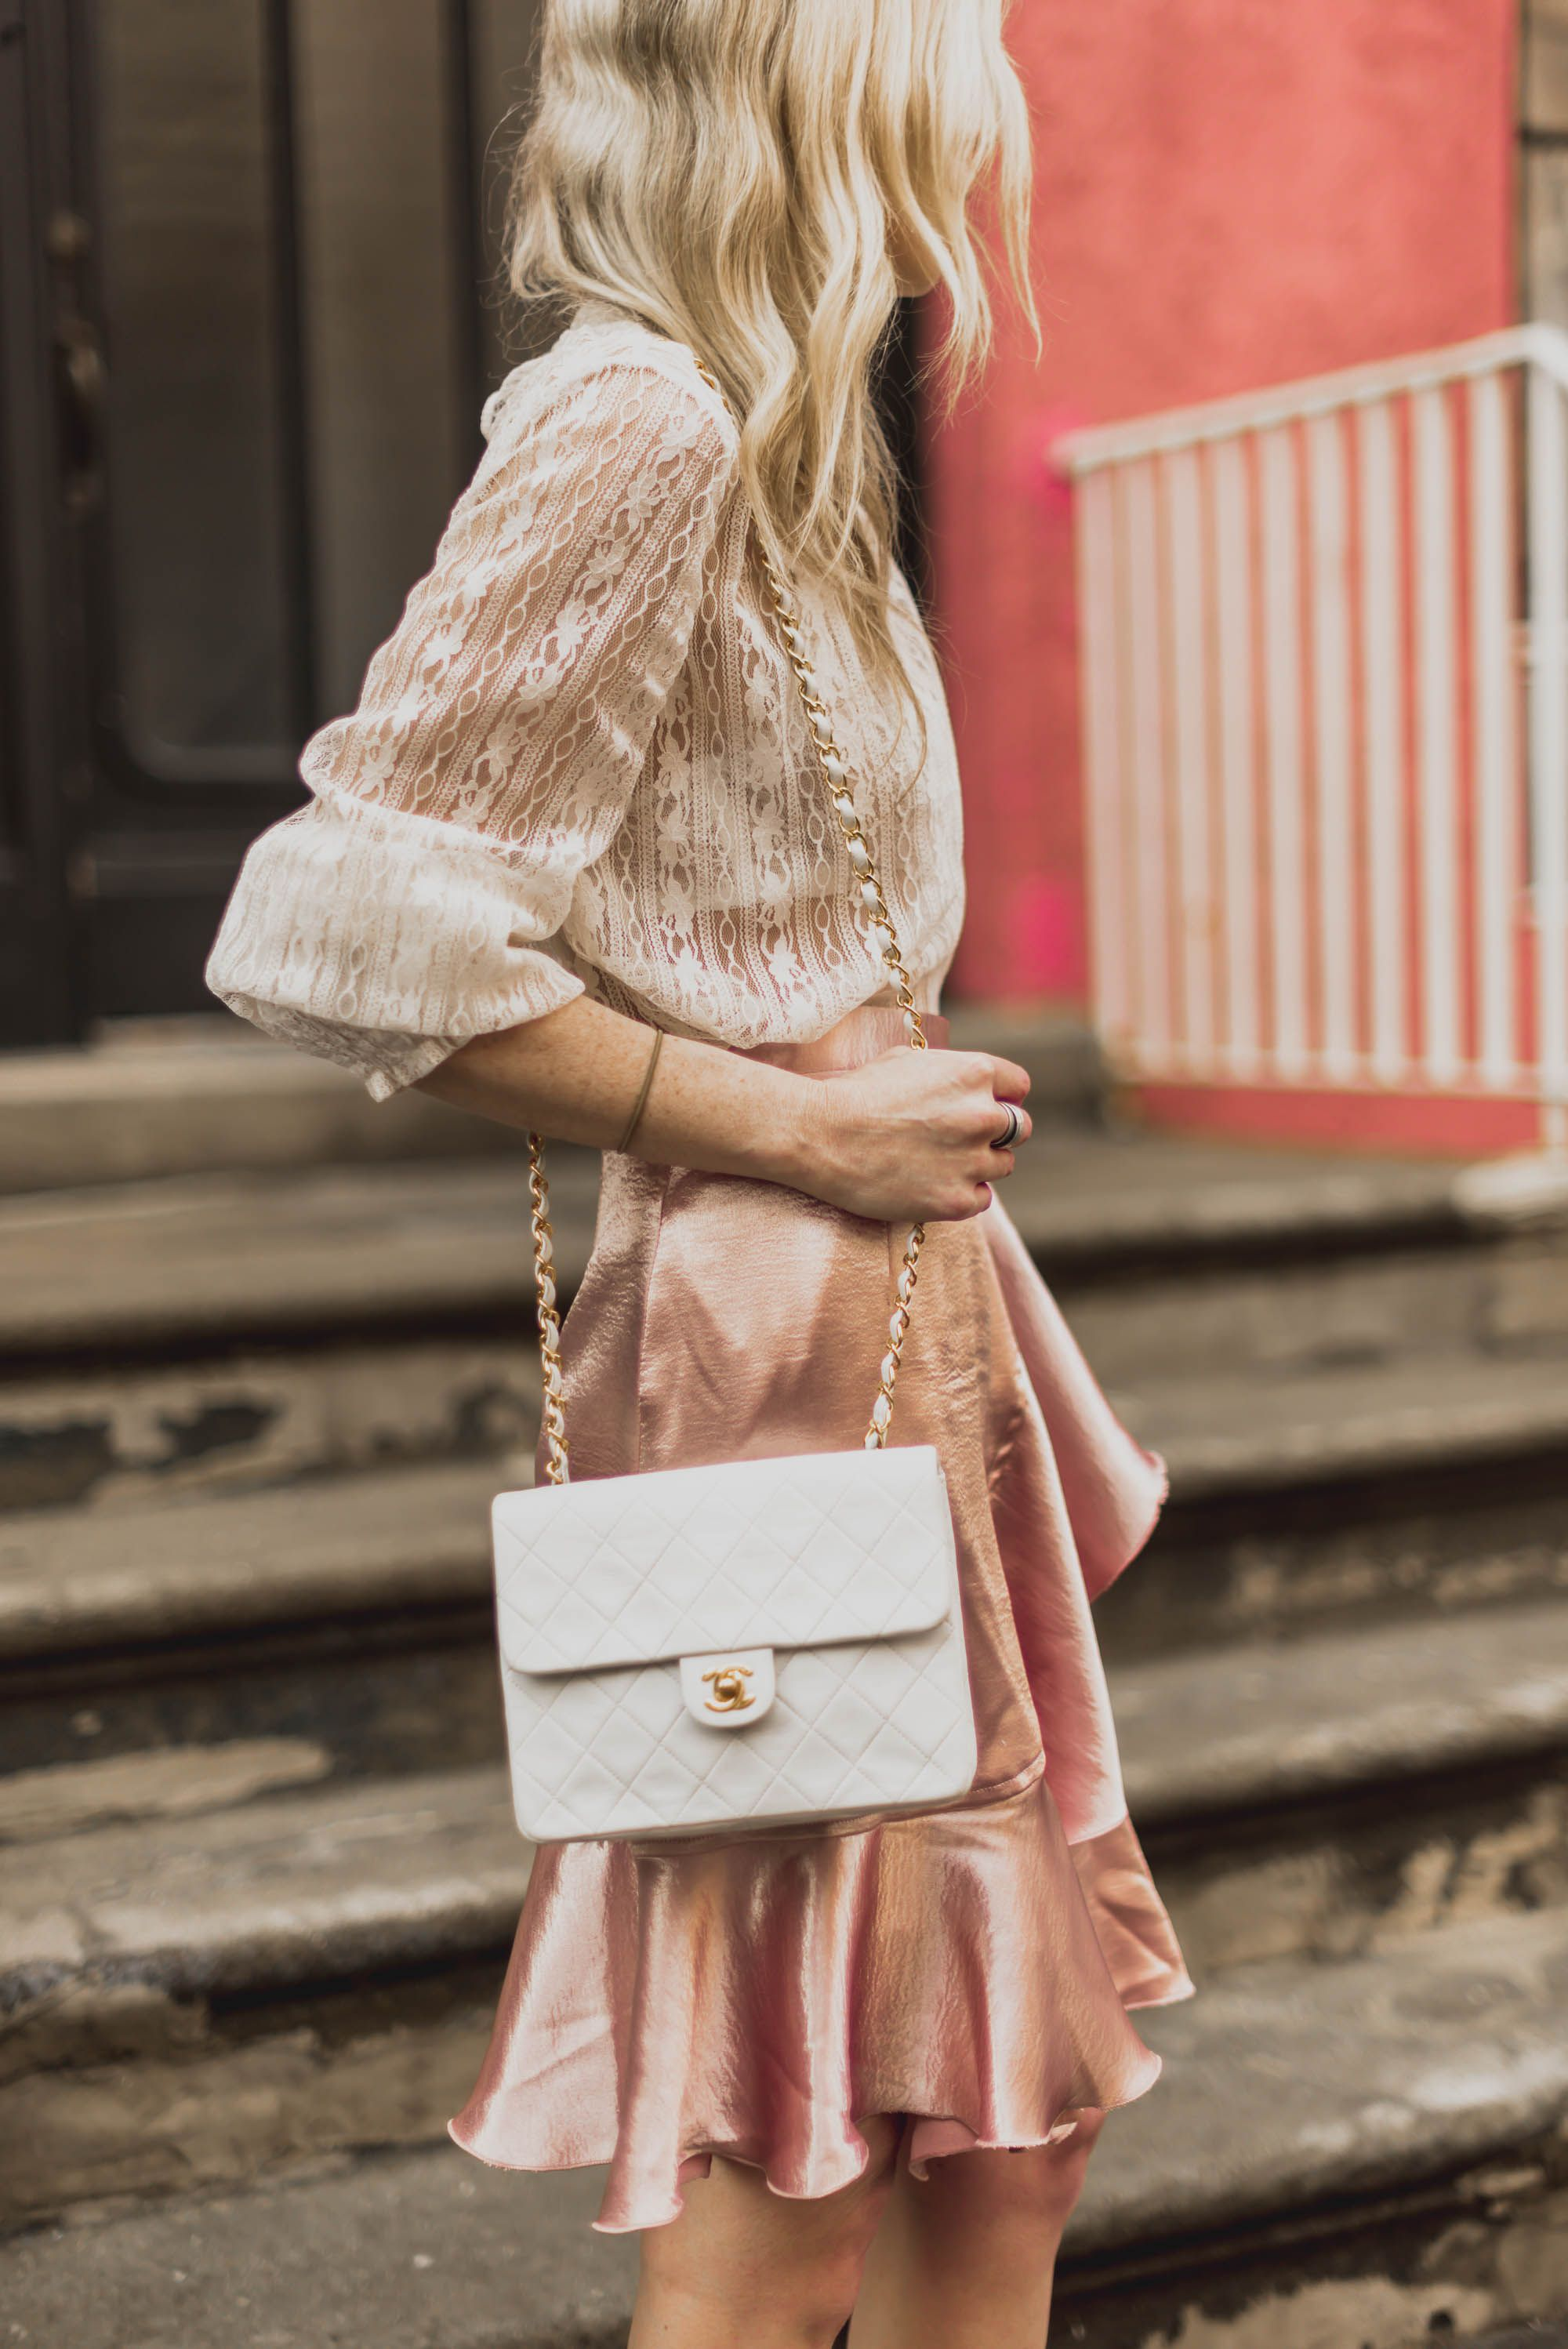 d75b38154425 Pin by Yael Steren on Accessories in 2019 | Fashion, Vintage chanel ...